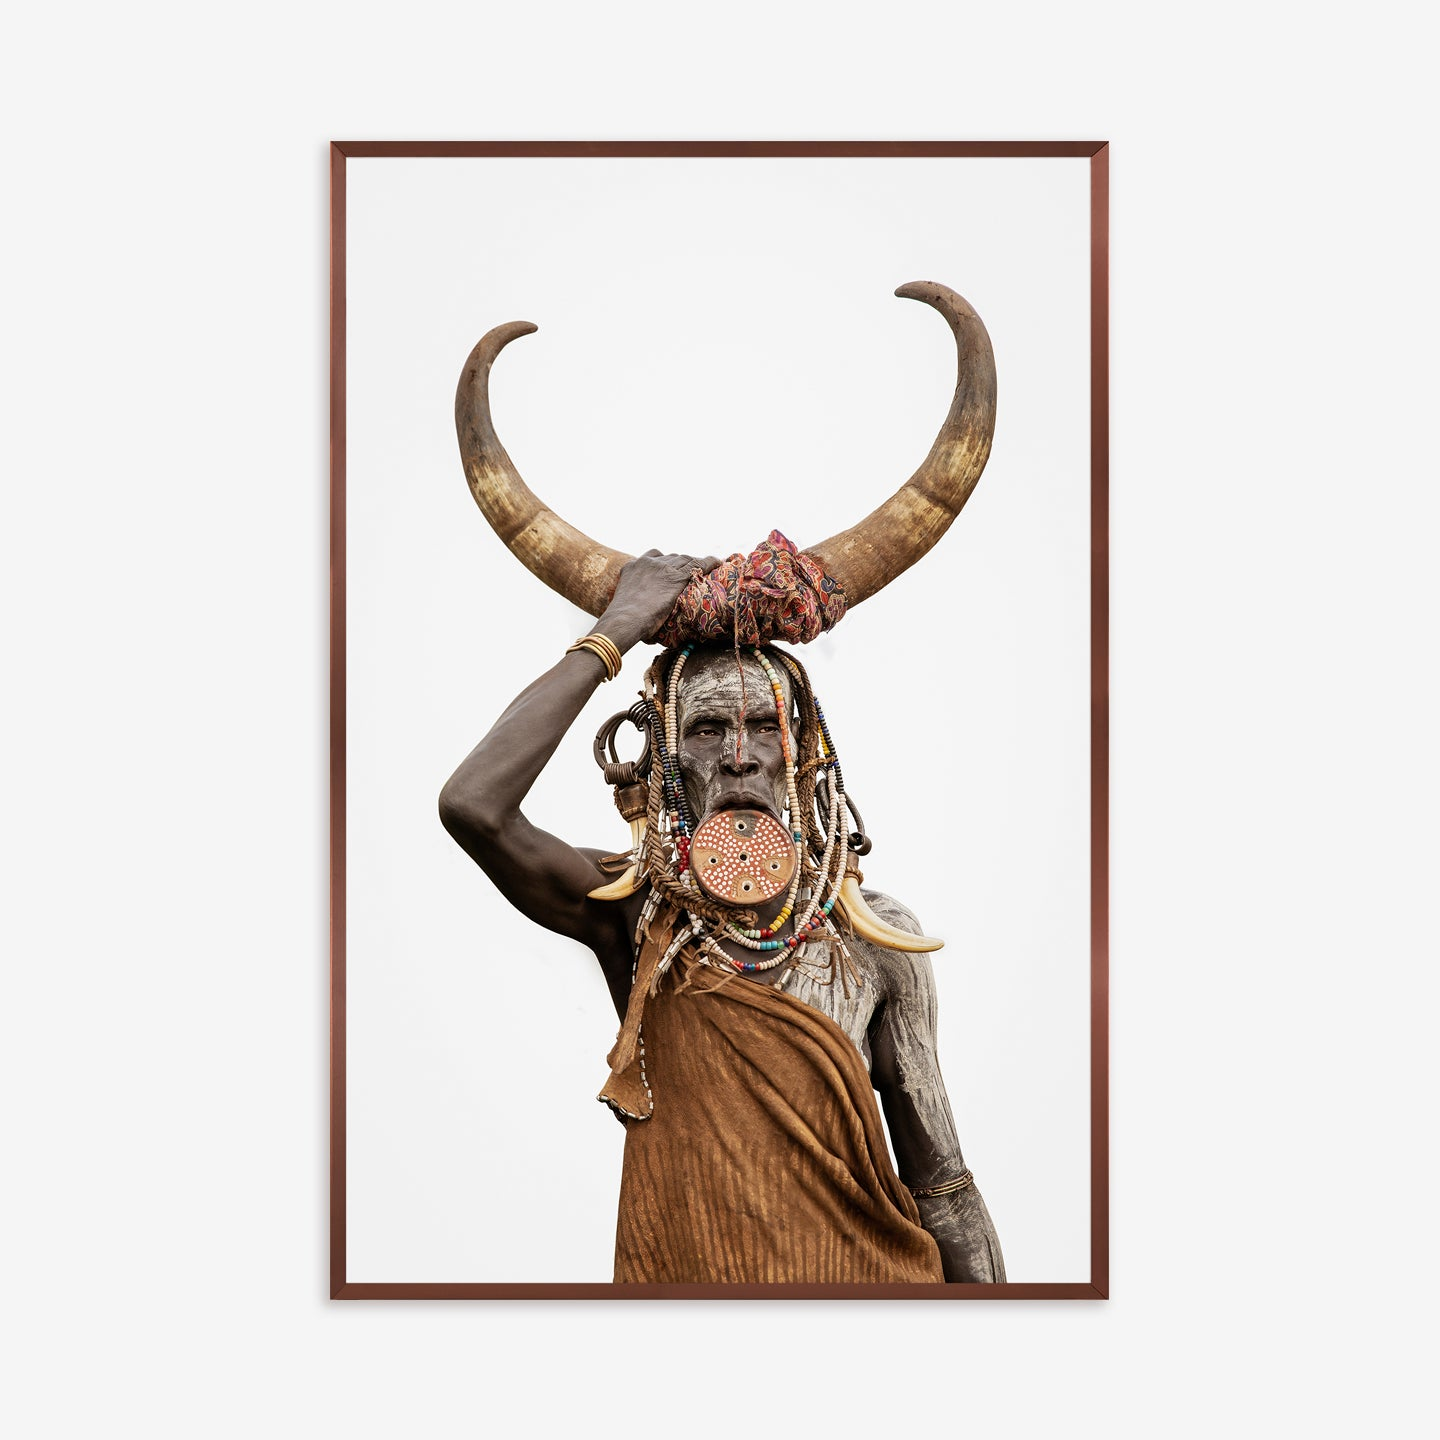 Horn - Mursi Tribe by Giovanna Aryafara for Artimage - Kelly Christian Designs